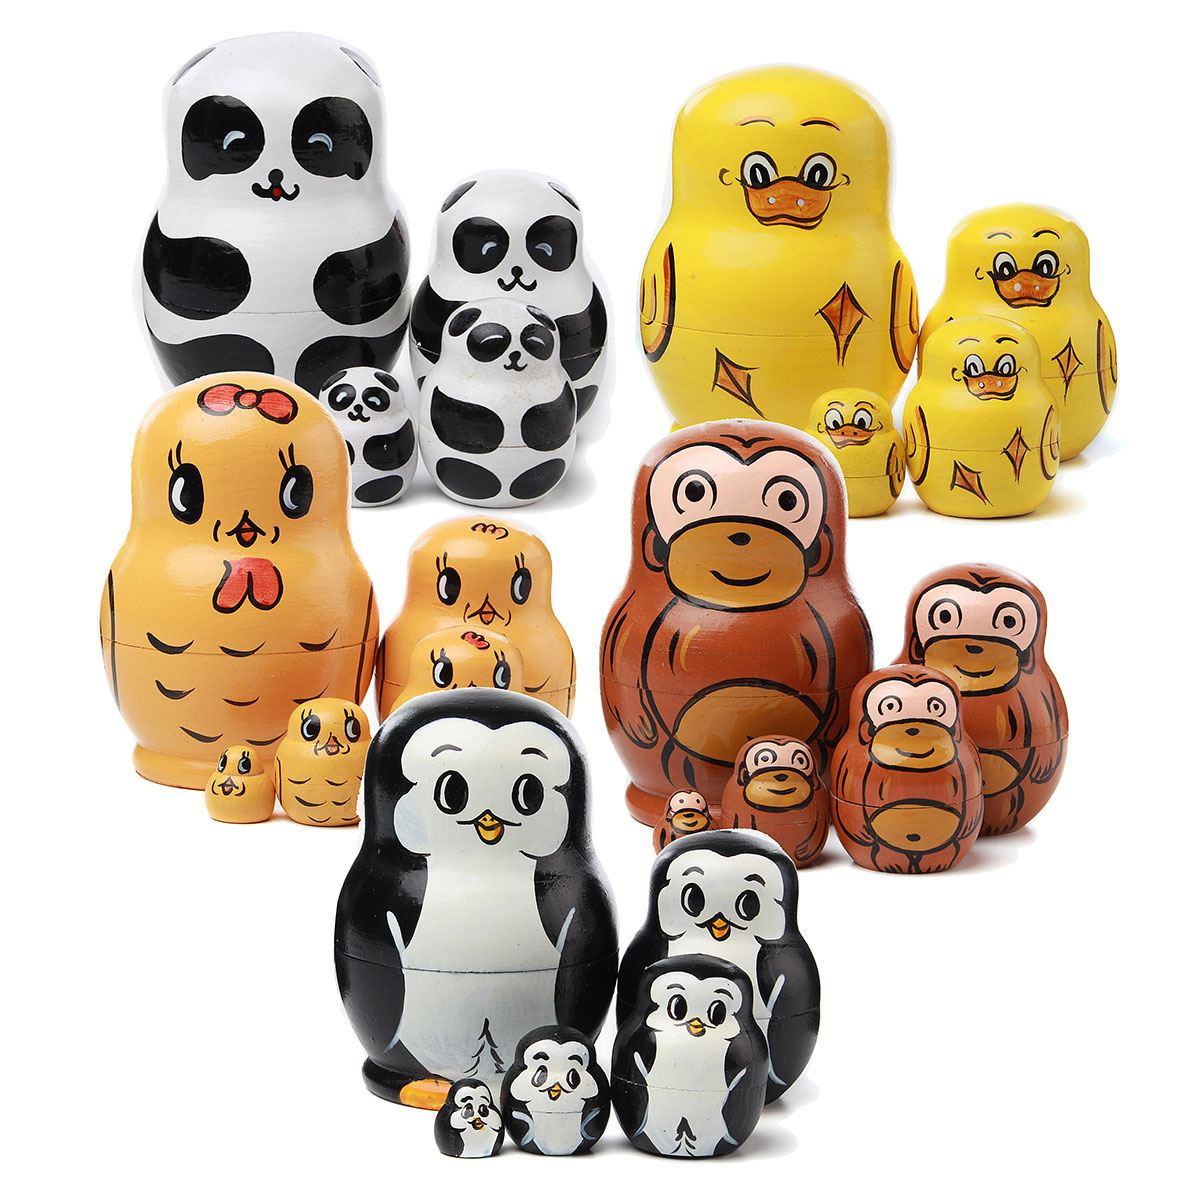 Gift Dolls Toys-Decoration Nesting Panda-Hand Painted Cute Wood Russian Adult Children